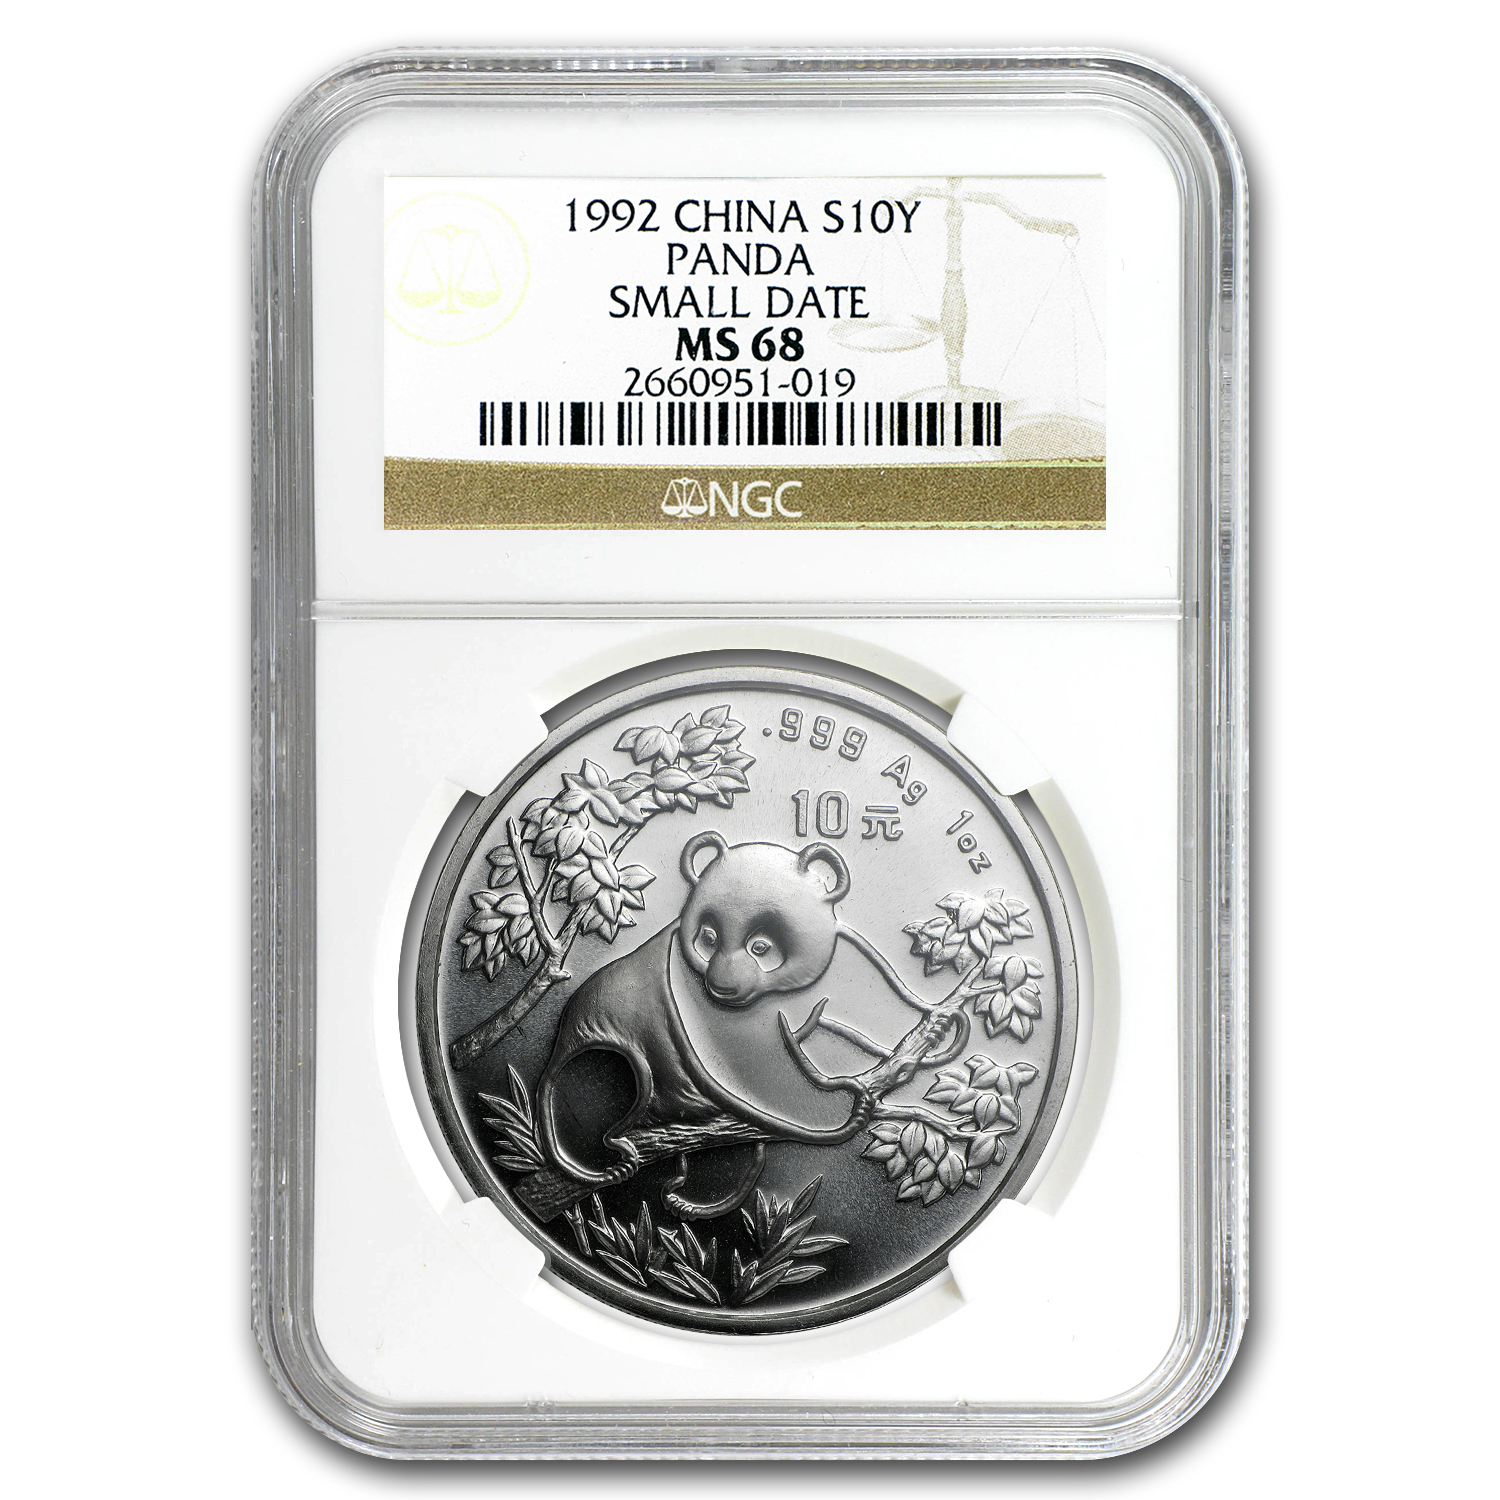 1992 Silver Chinese Panda 1 oz - MS-68 NGC - (Small Date)